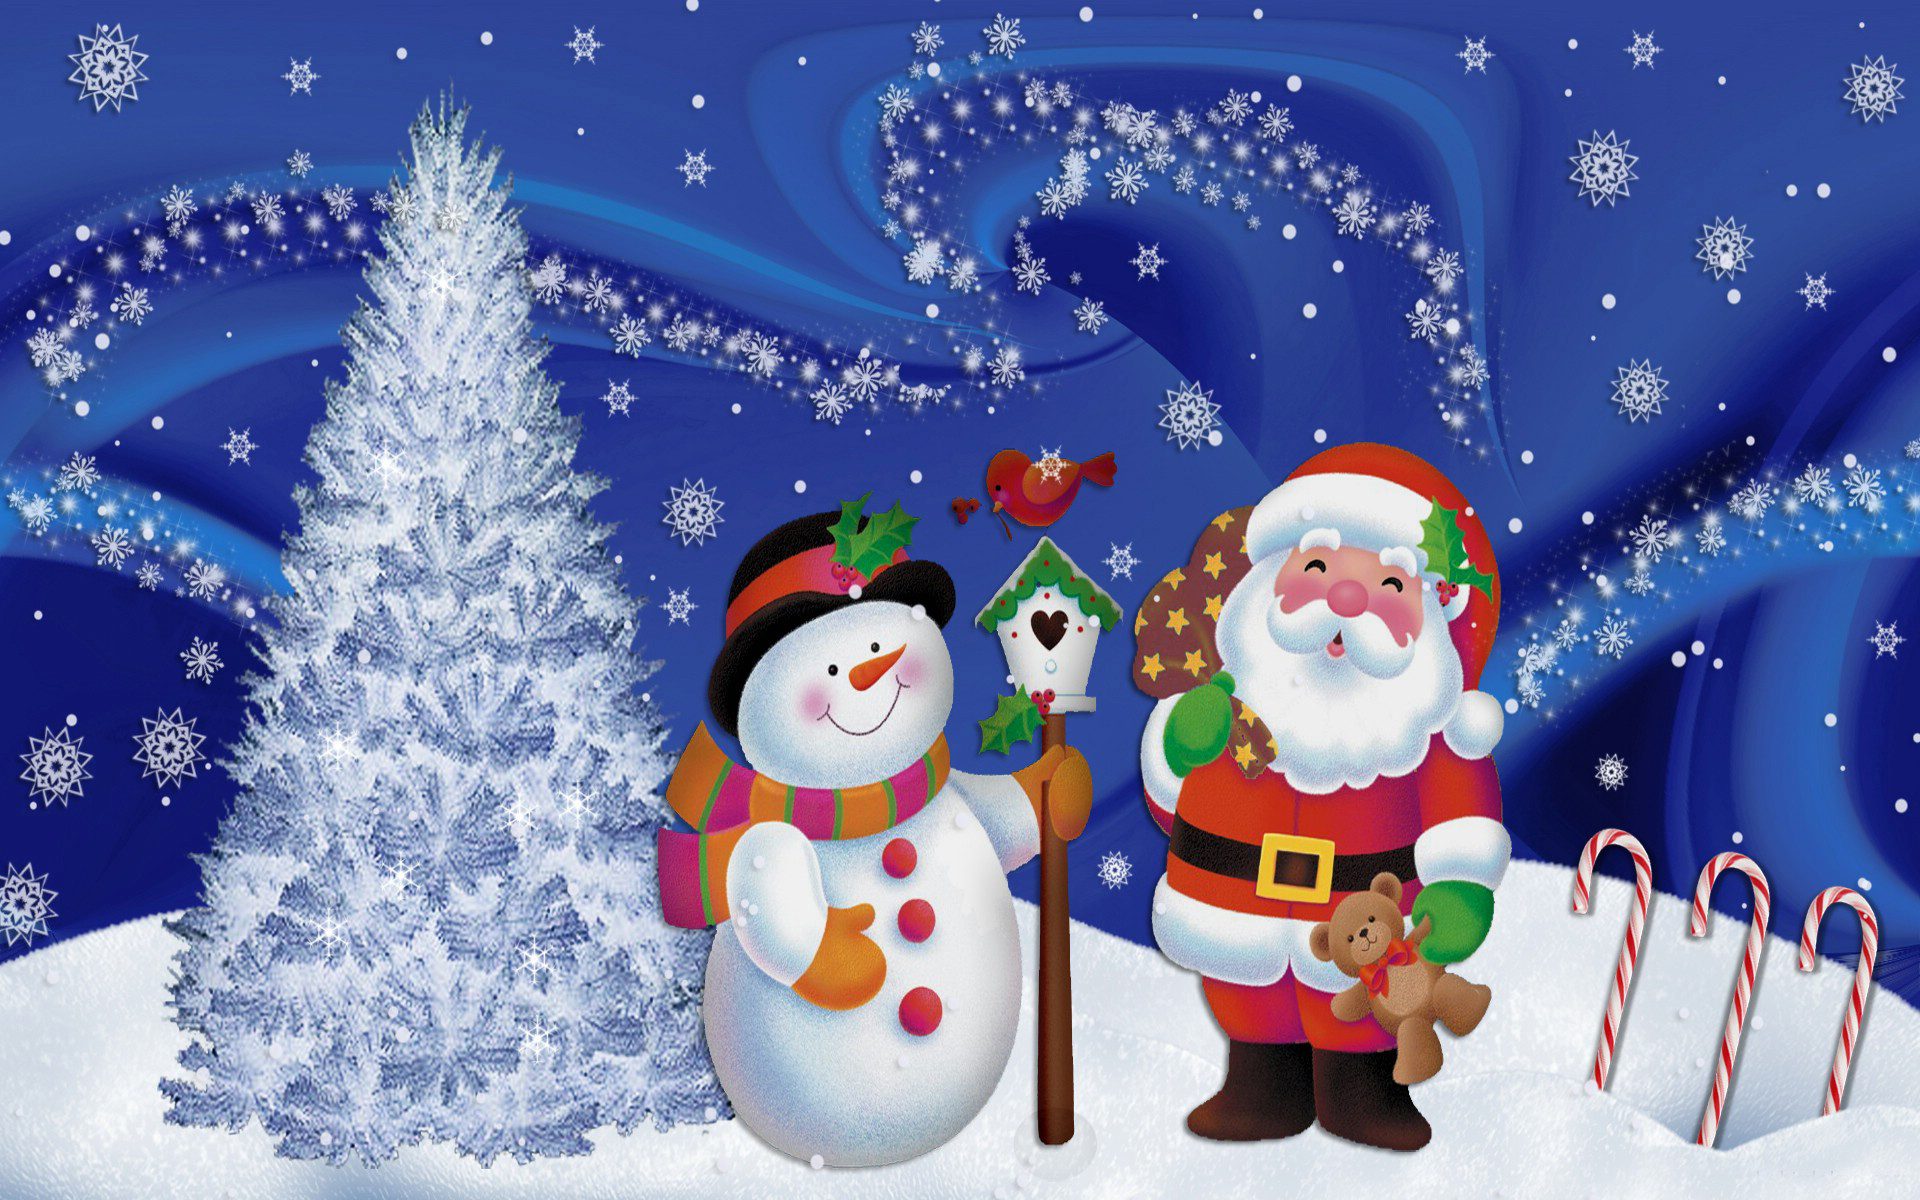 Christmas Hd Wallpaper For Android.Christmas Hd Wallpapers 80 Images